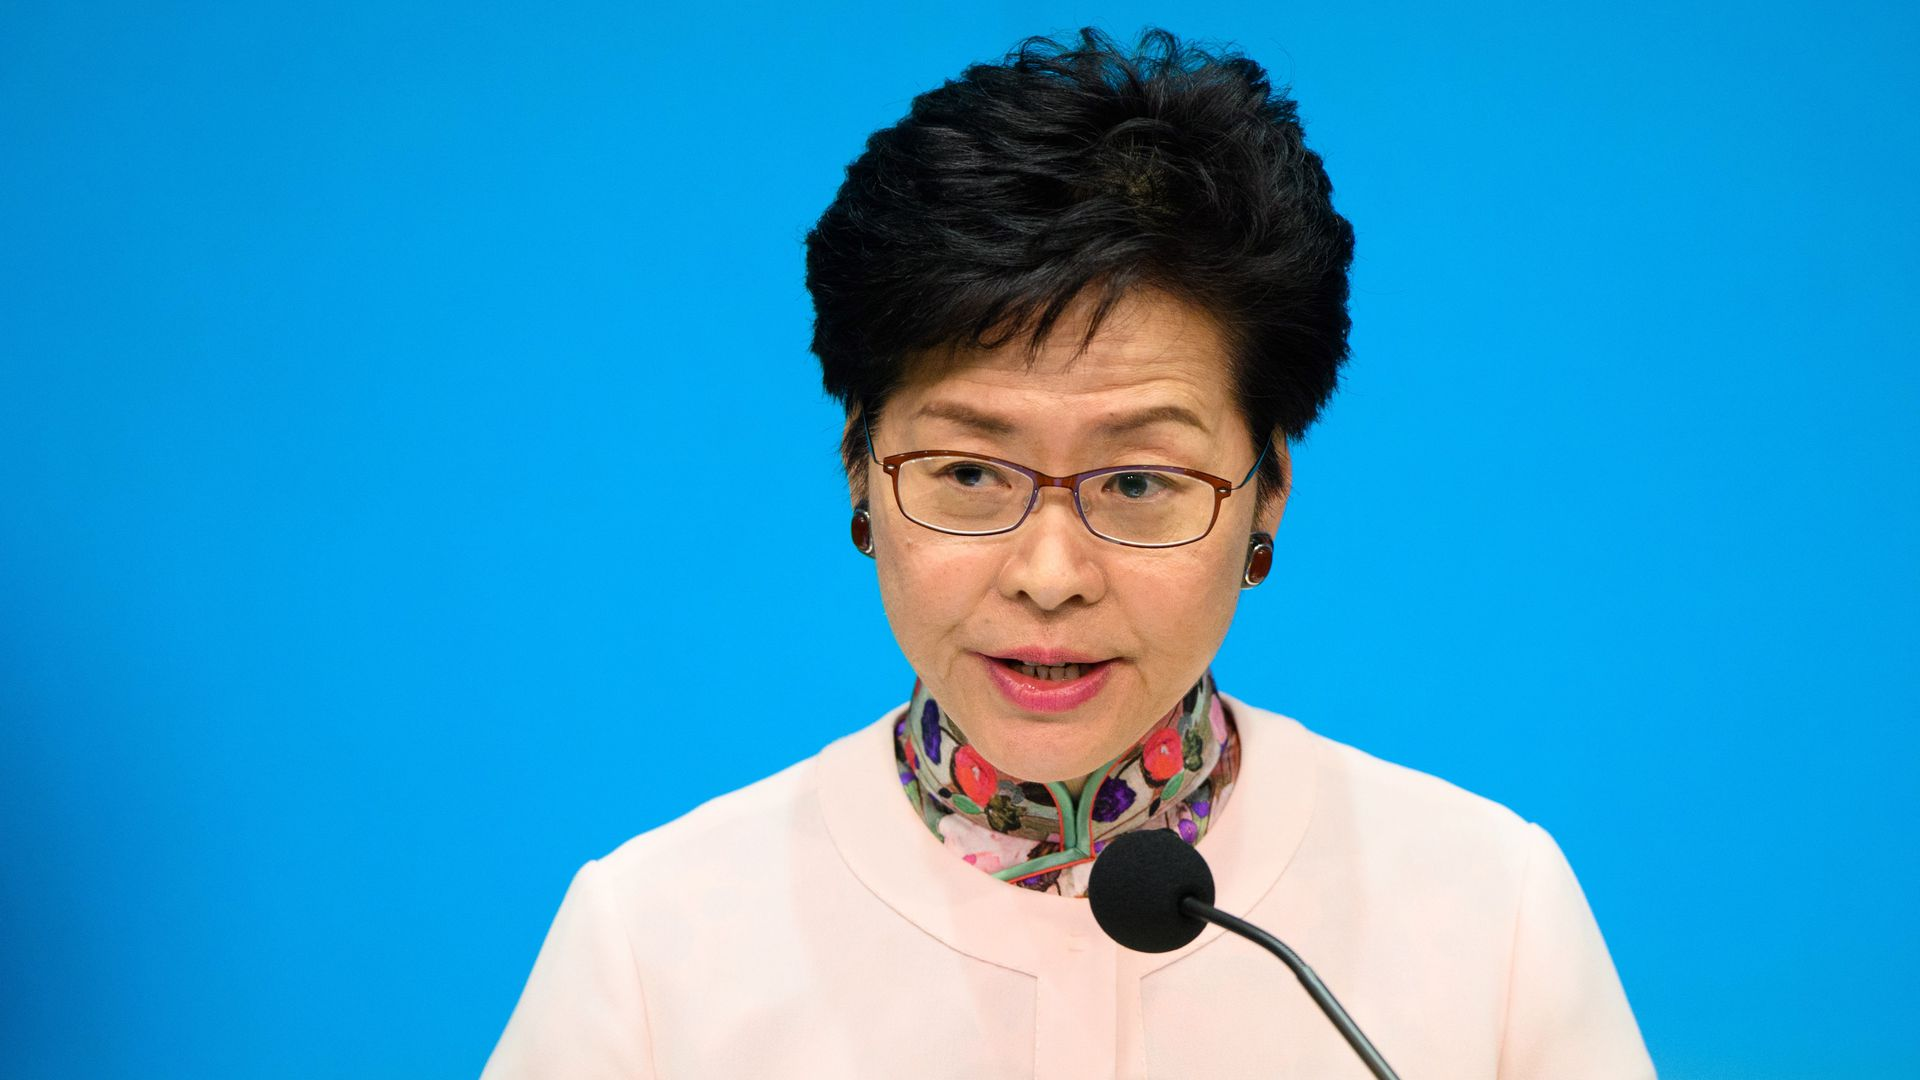 This image shows Carrie Lam in a sweater standing and speaking in front of a microphone.